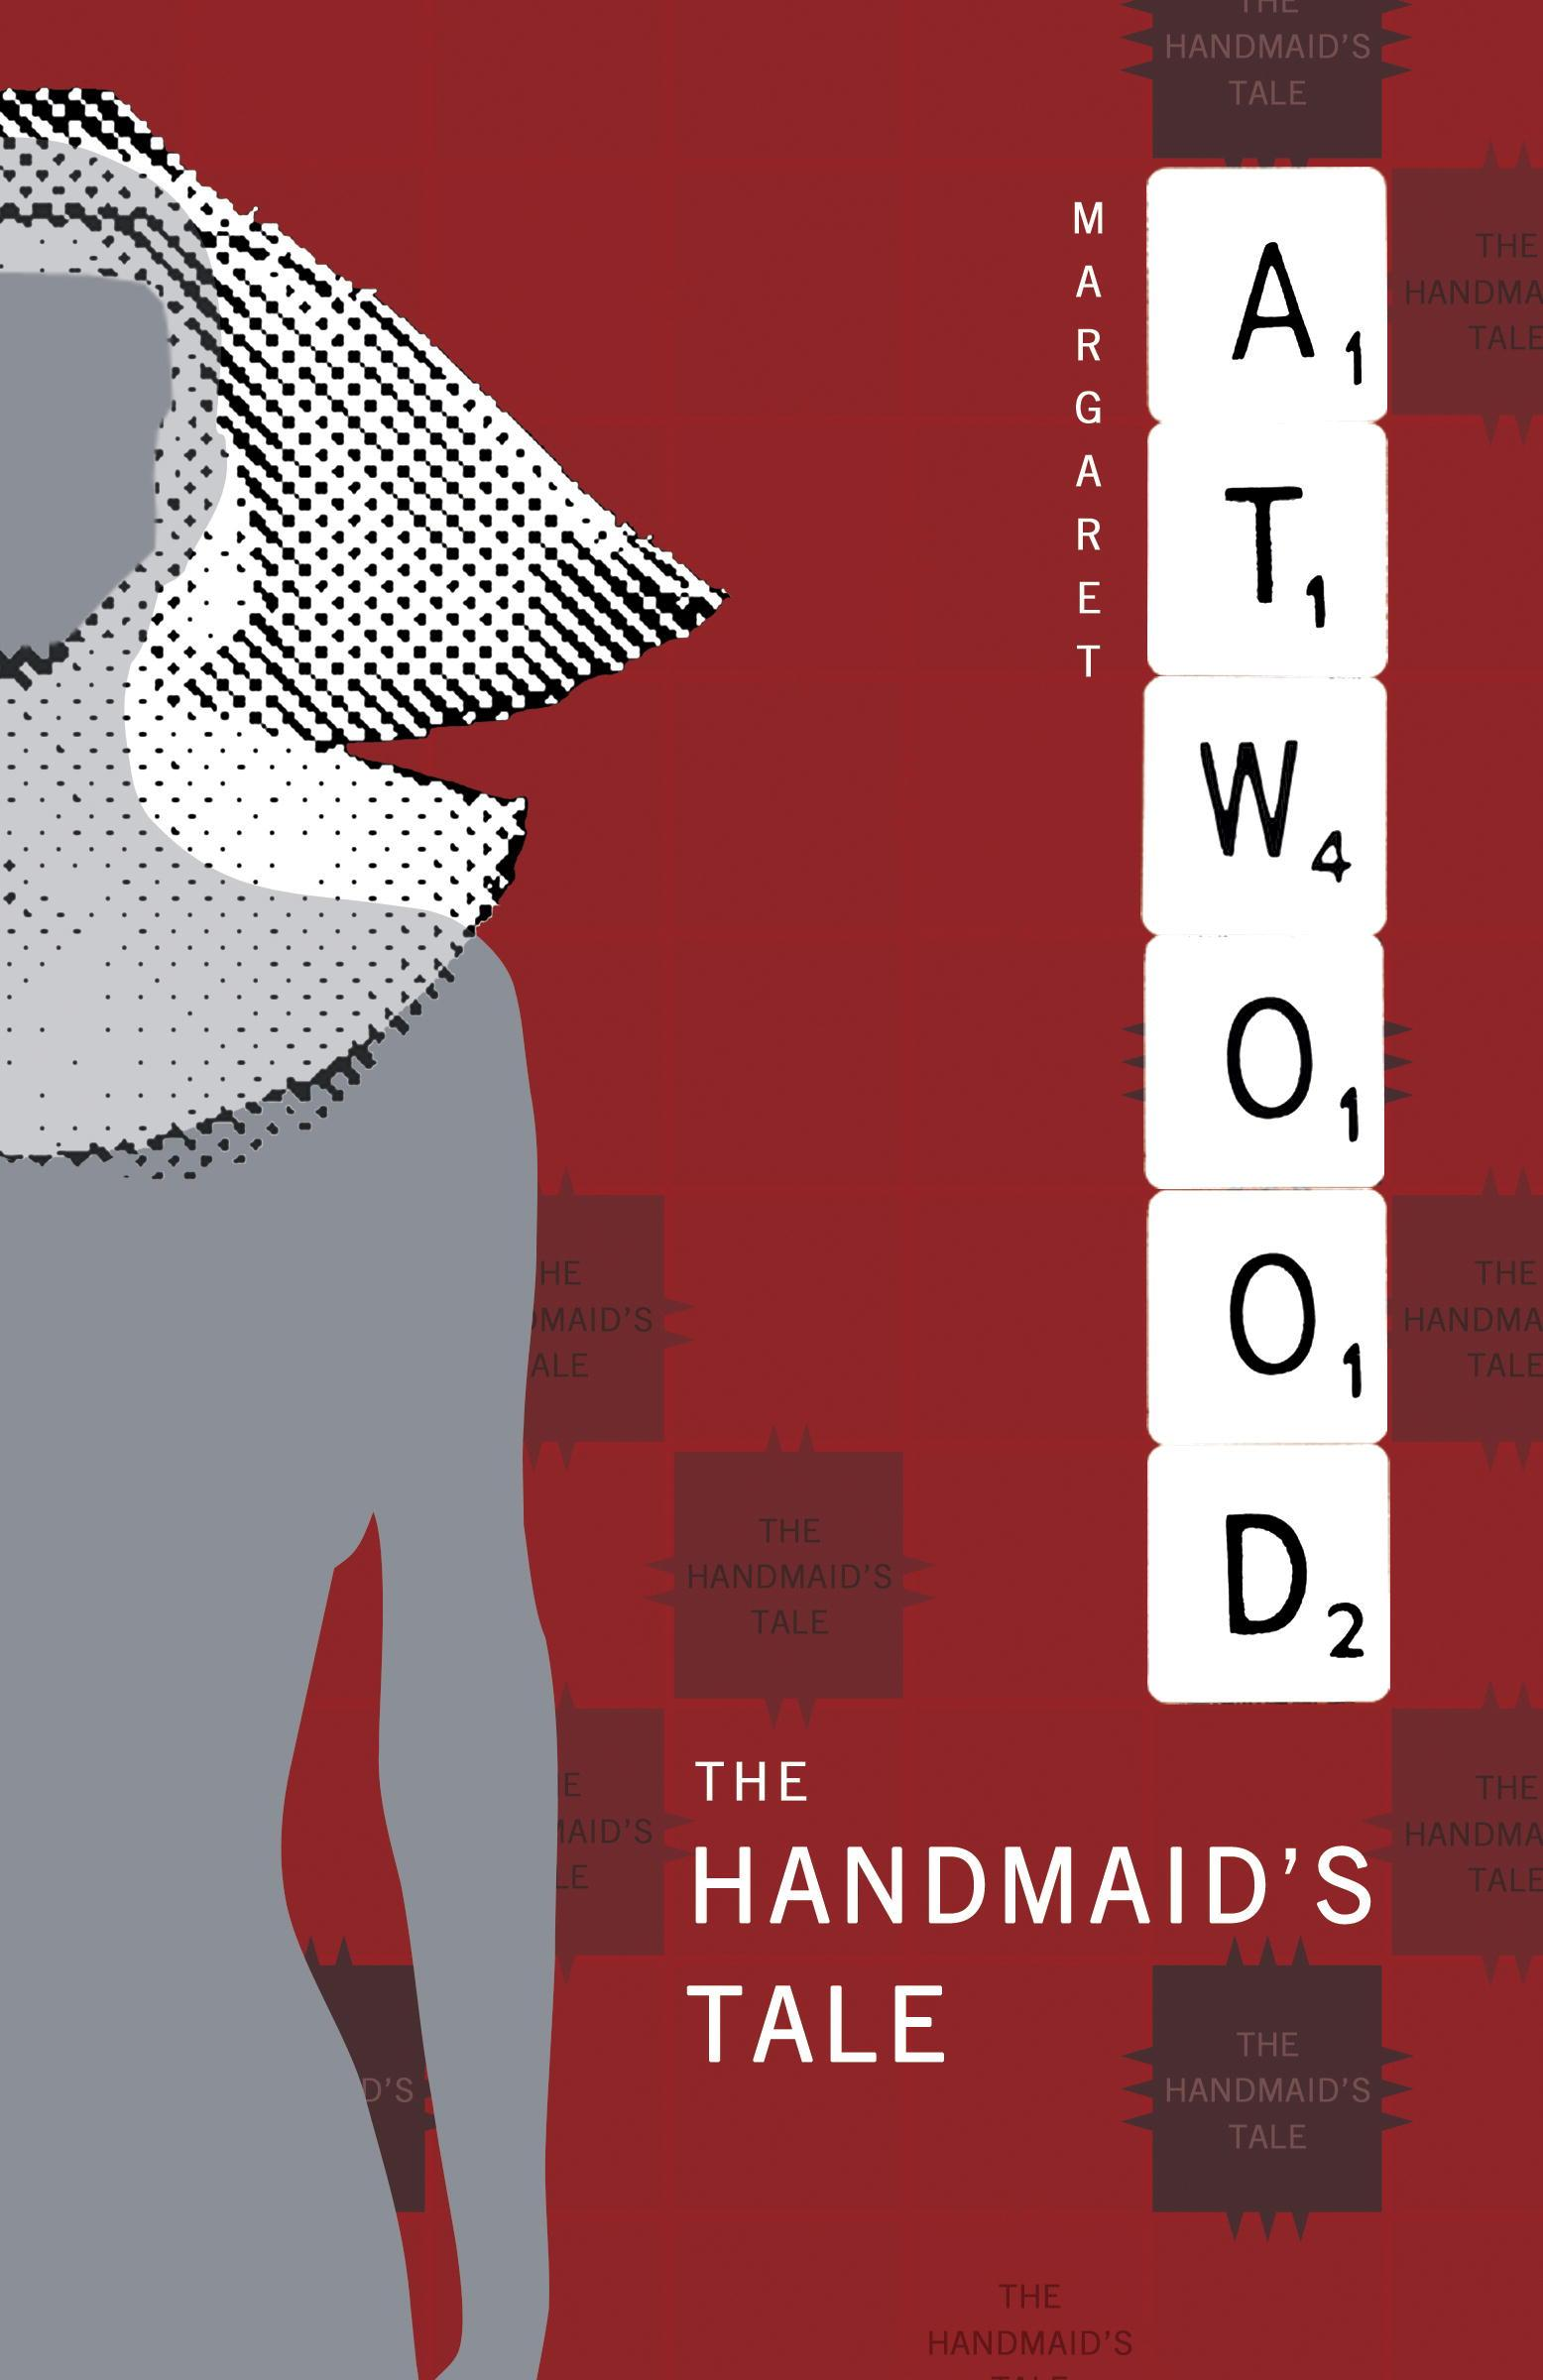 an analysis of the novel the handmaids tale by margaret atwoods on birth rates in the united states It was 6 years before atwood wrote handmaids tale 2 months in february 1978 atwood travel to afghanistan and how long later there was a coup d'etat to overthrow afgan president and seize control of the government.